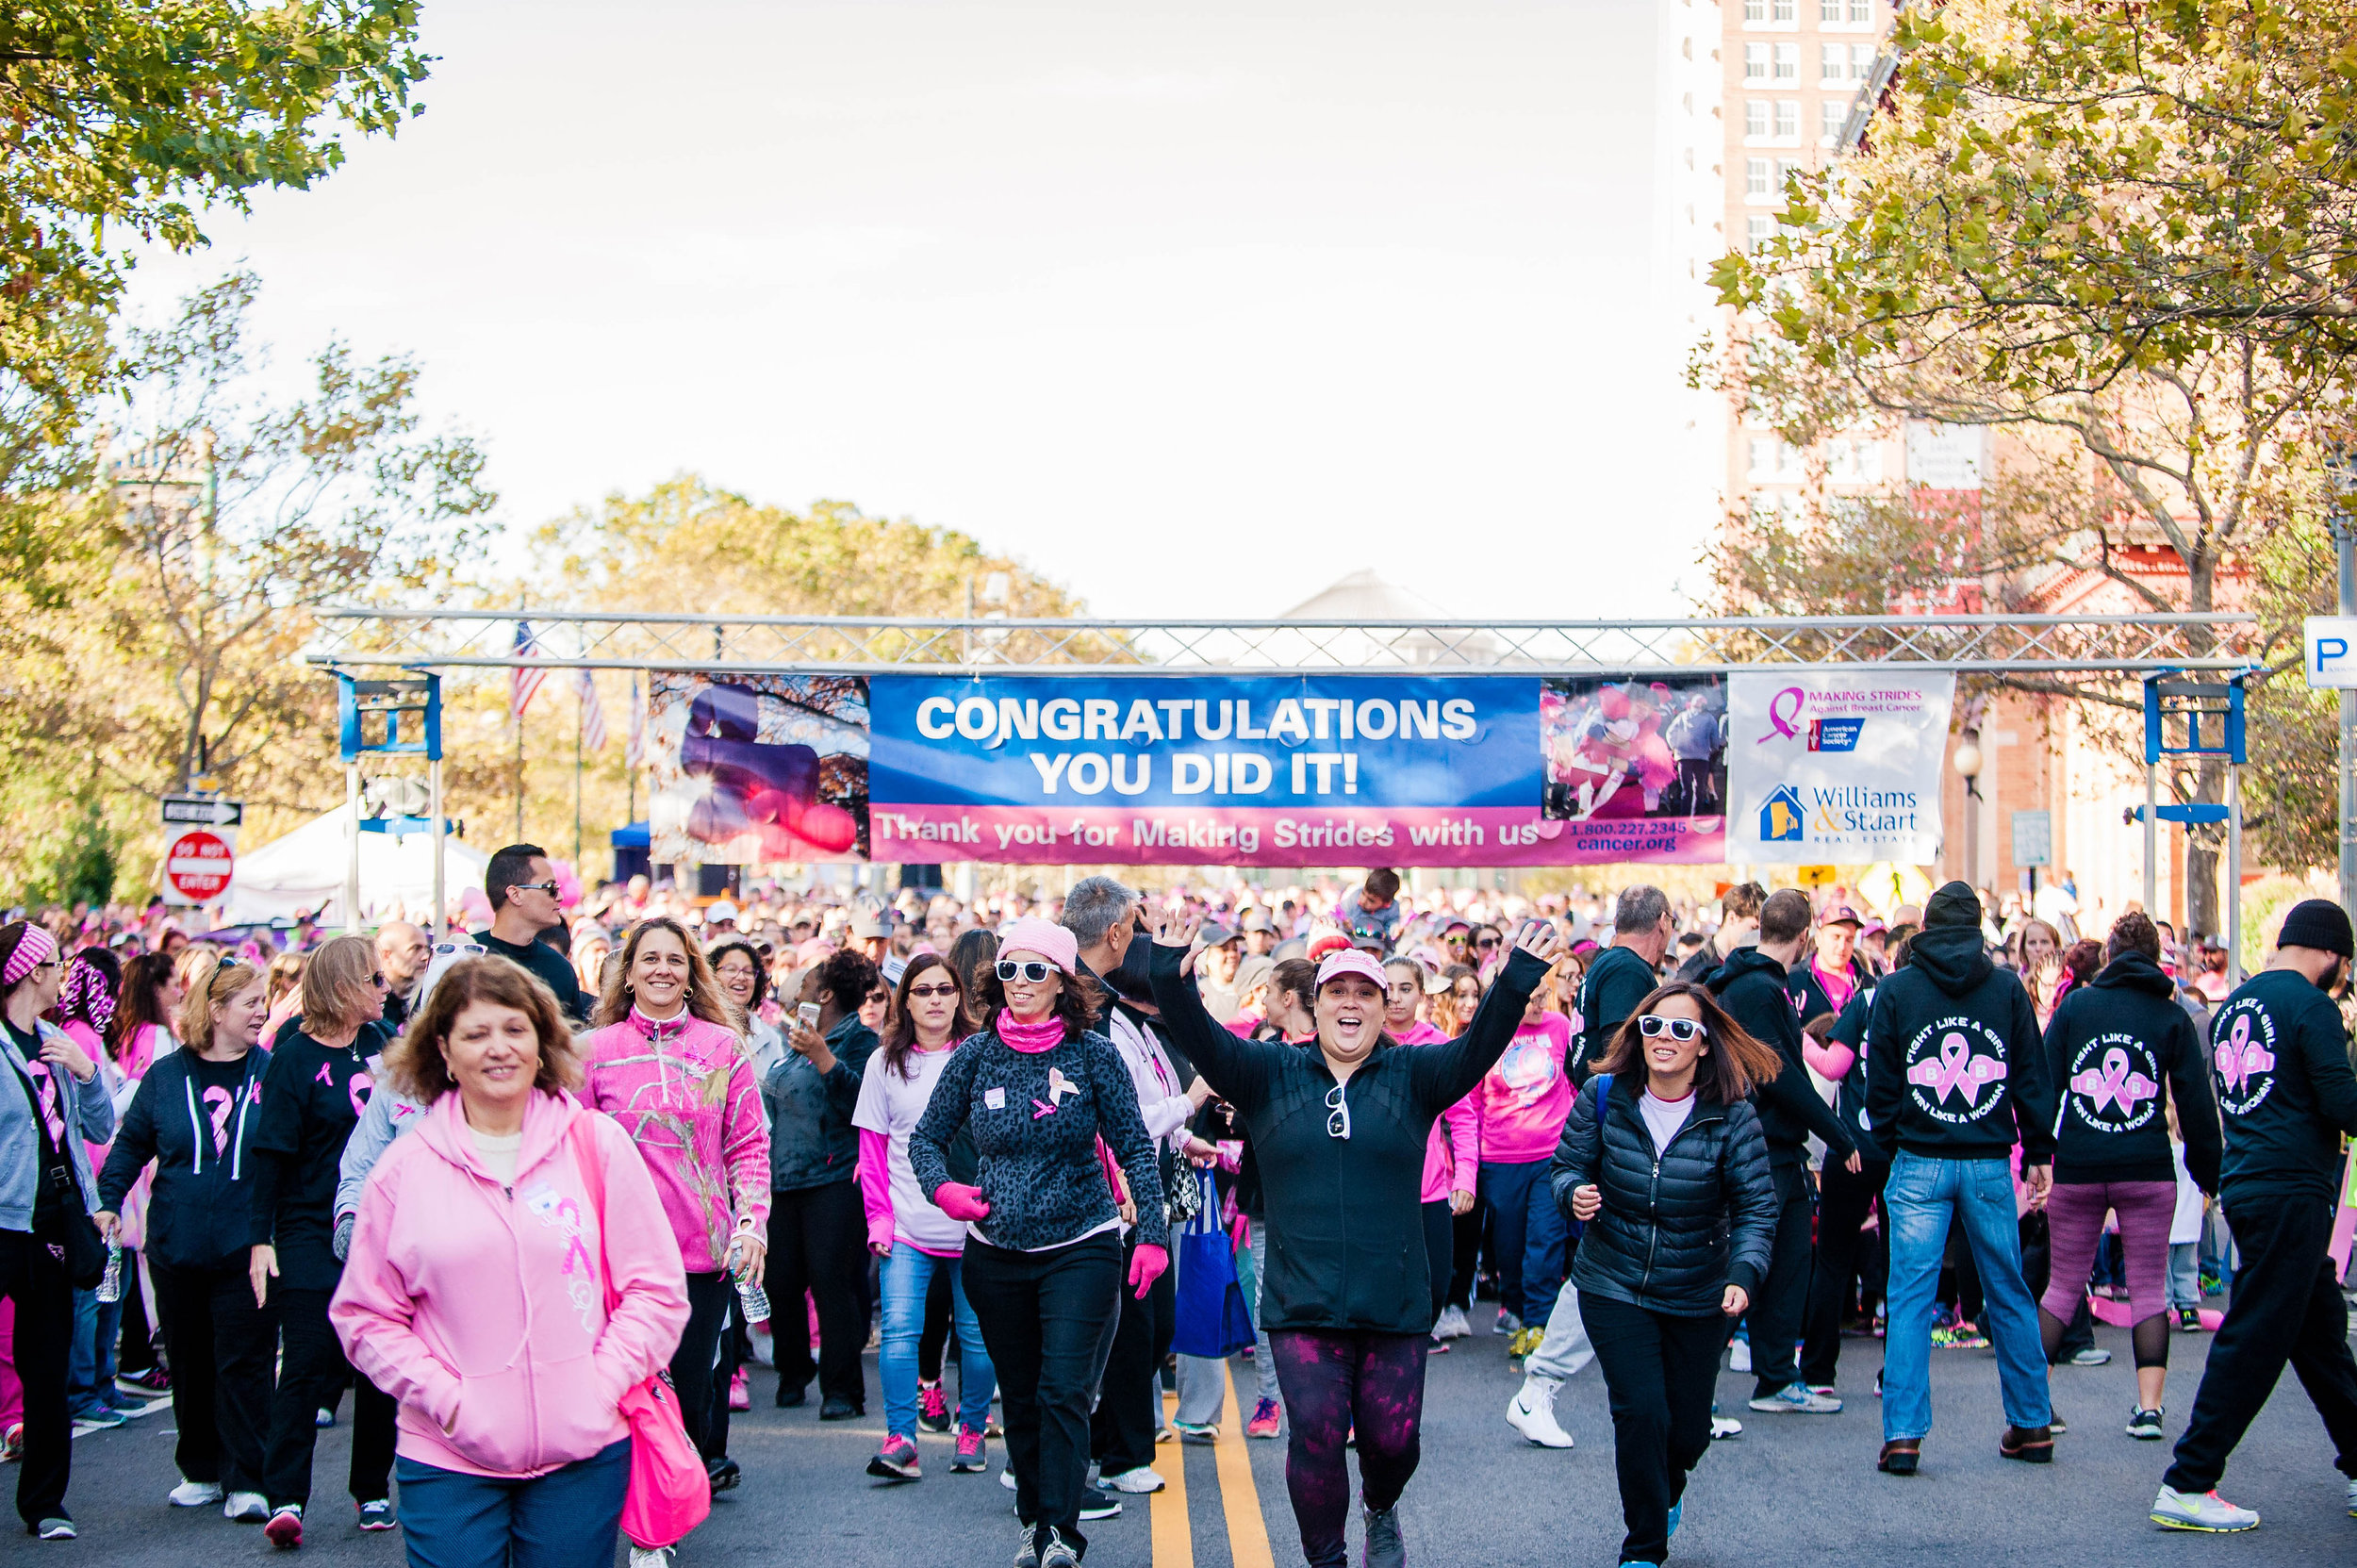 Makingstrides2016-63.jpg